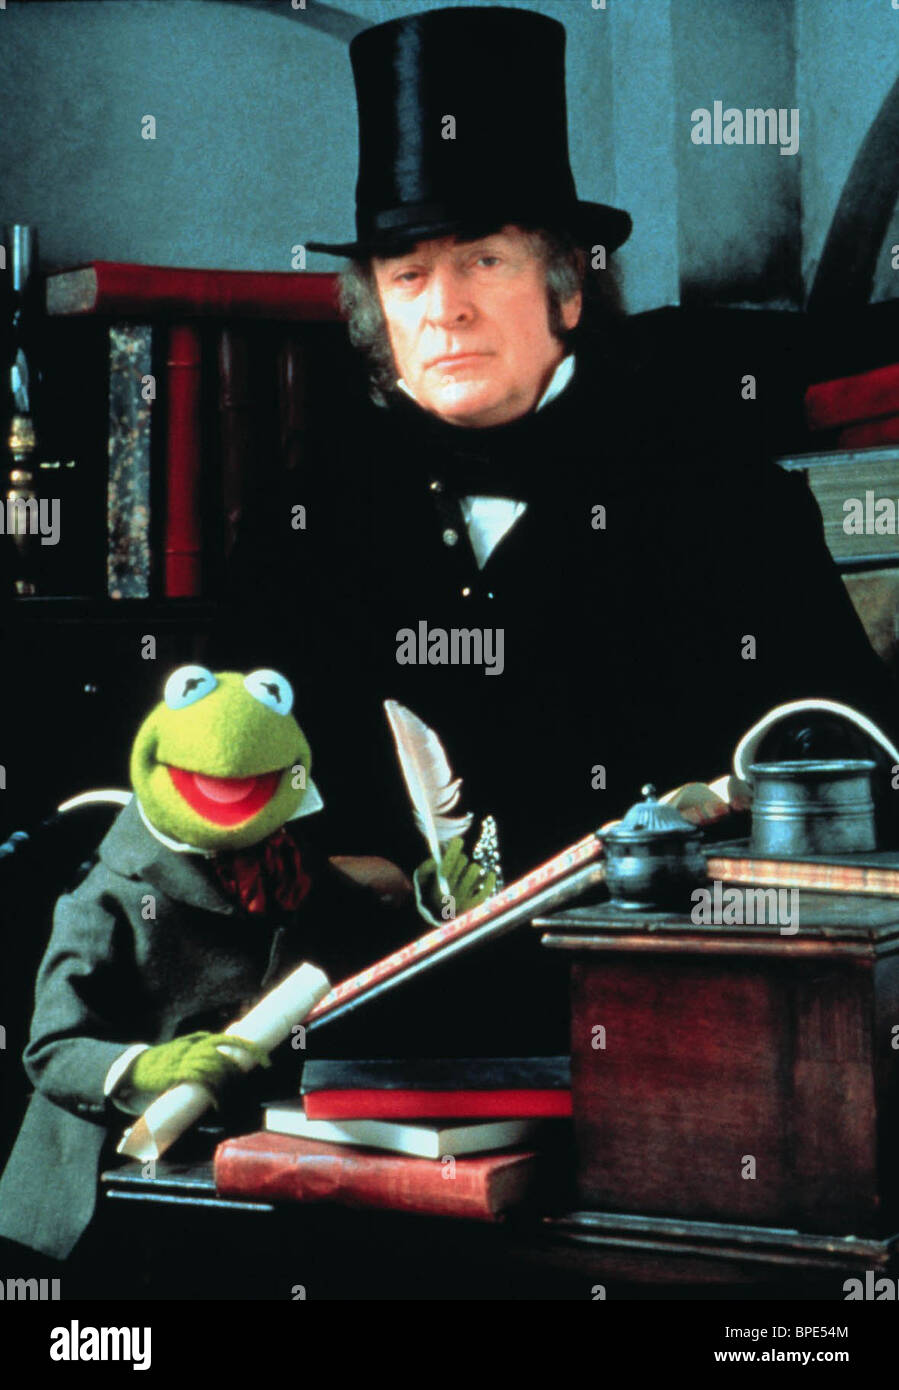 KERMIT THE FROG, MICHAEL CAINE, THE MUPPET CHRISTMAS CAROL